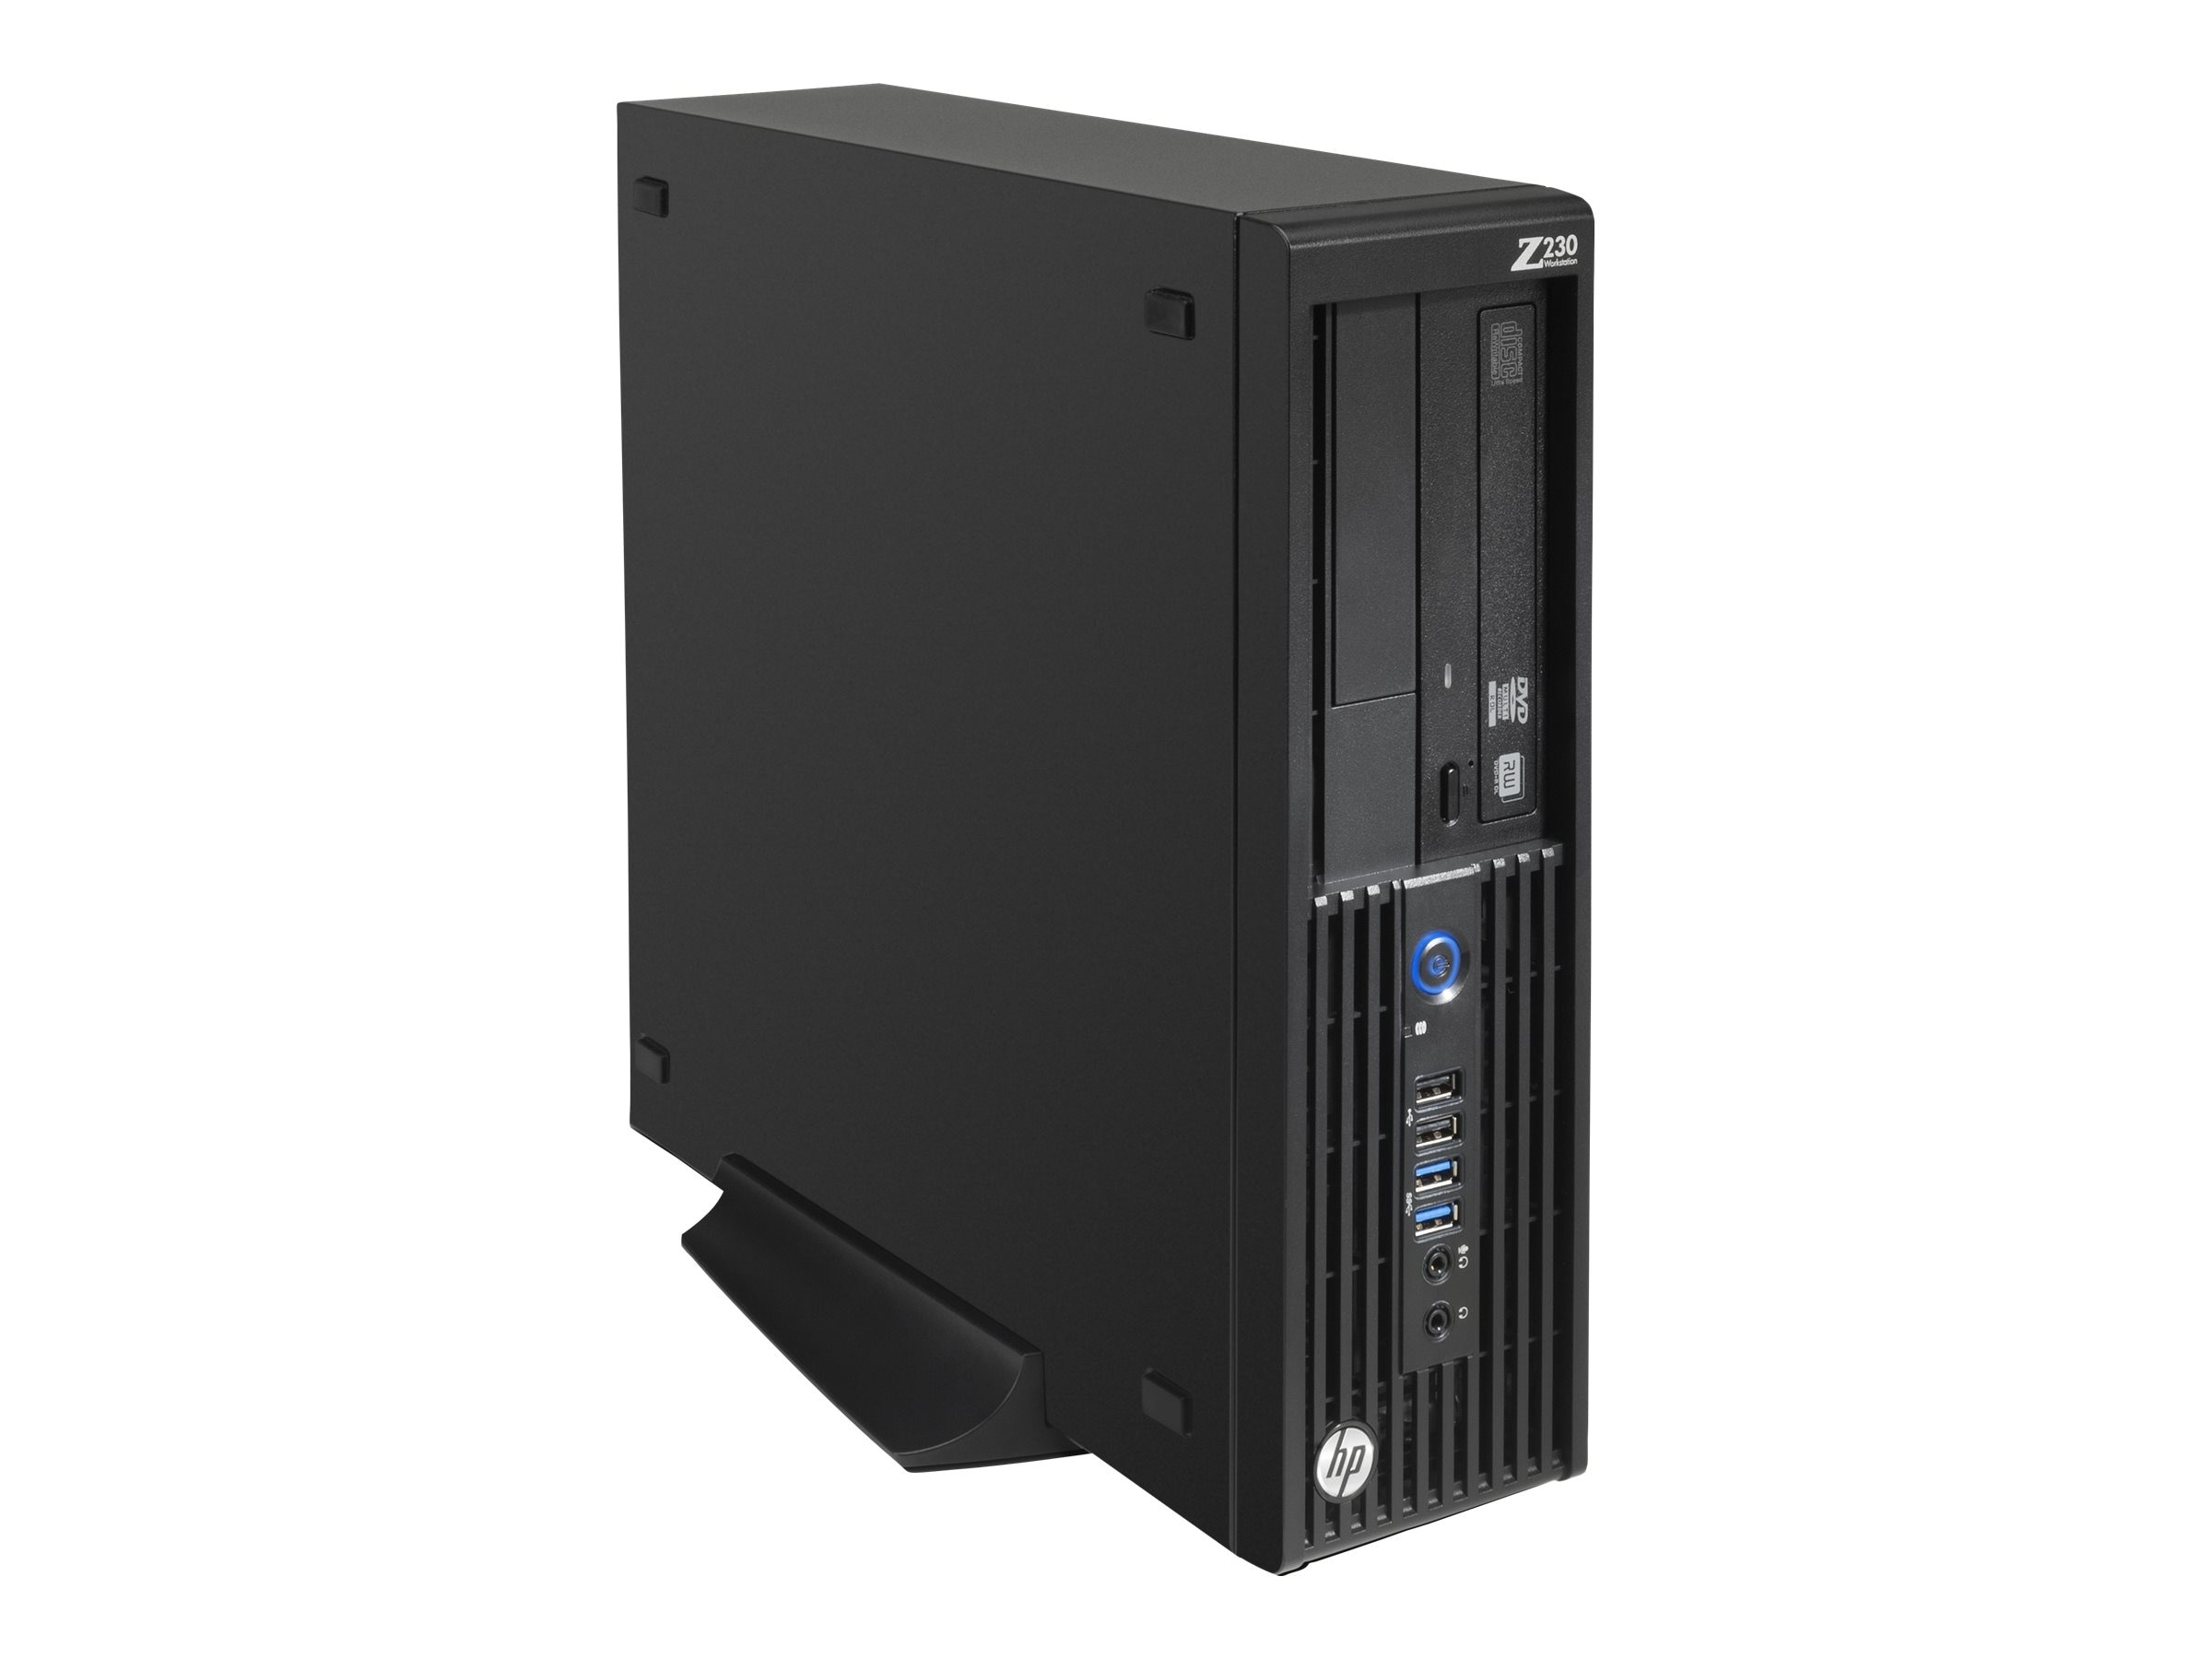 HP Z230 3.3GHz Core i5, L9J83UT#ABA, 30739658, Workstations